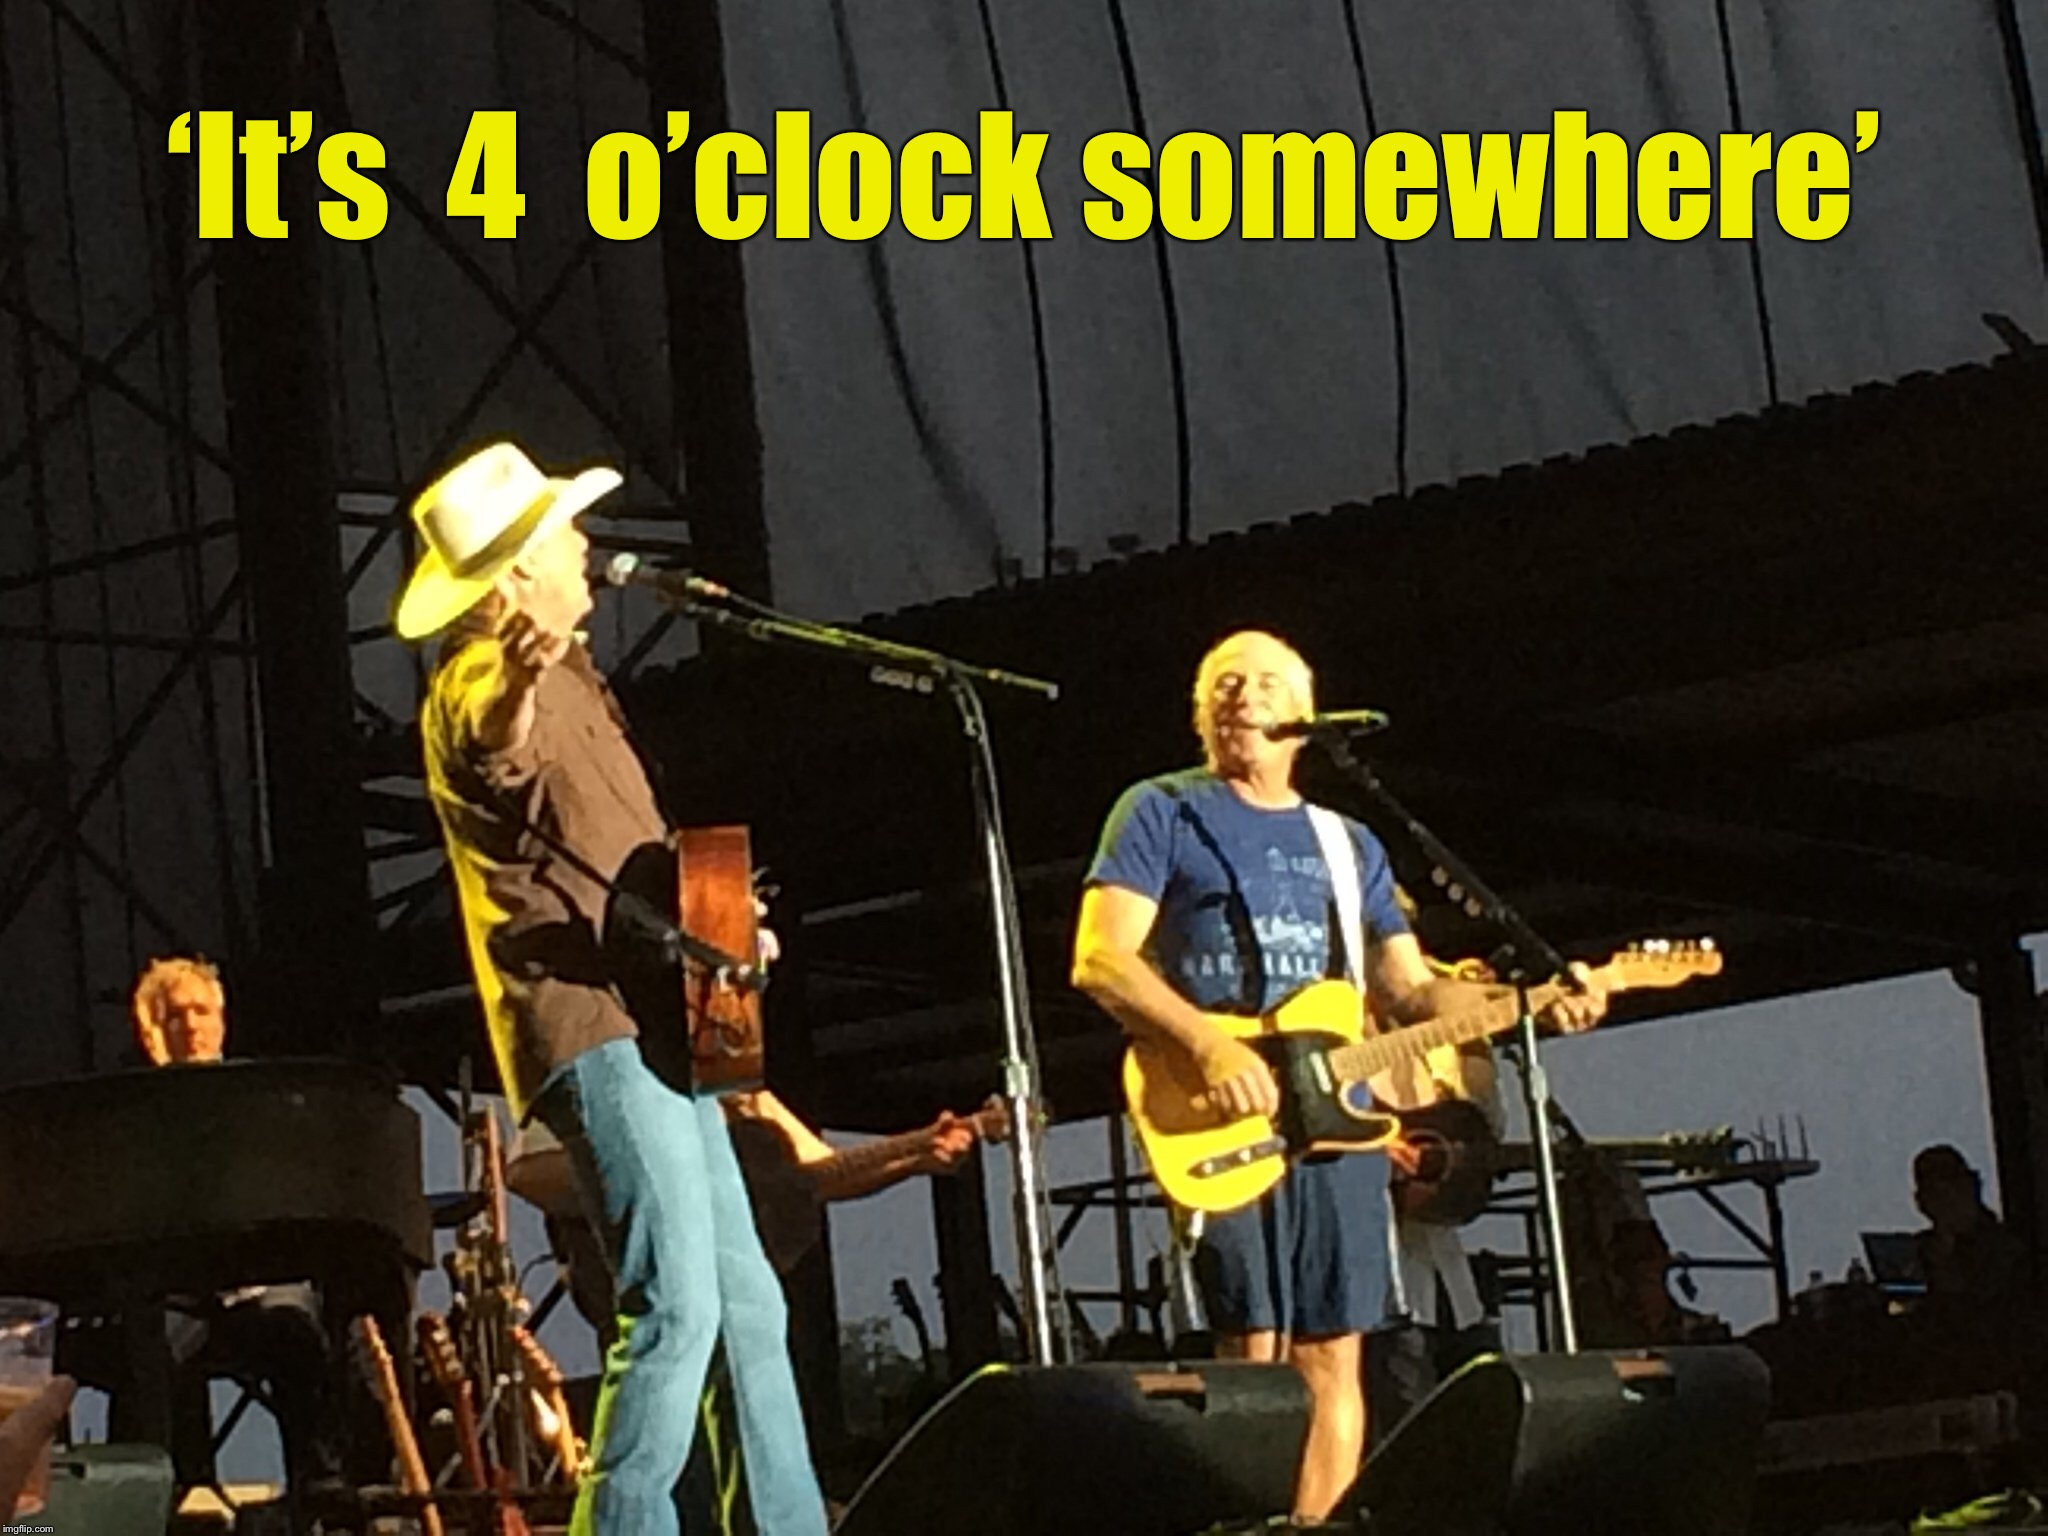 Stupid daylight saving time! |  'It's  4  o'clock somewhere' | image tagged in memes,jimmy buffett,alan jackson,5 oclock somewhere,daylight saving time | made w/ Imgflip meme maker